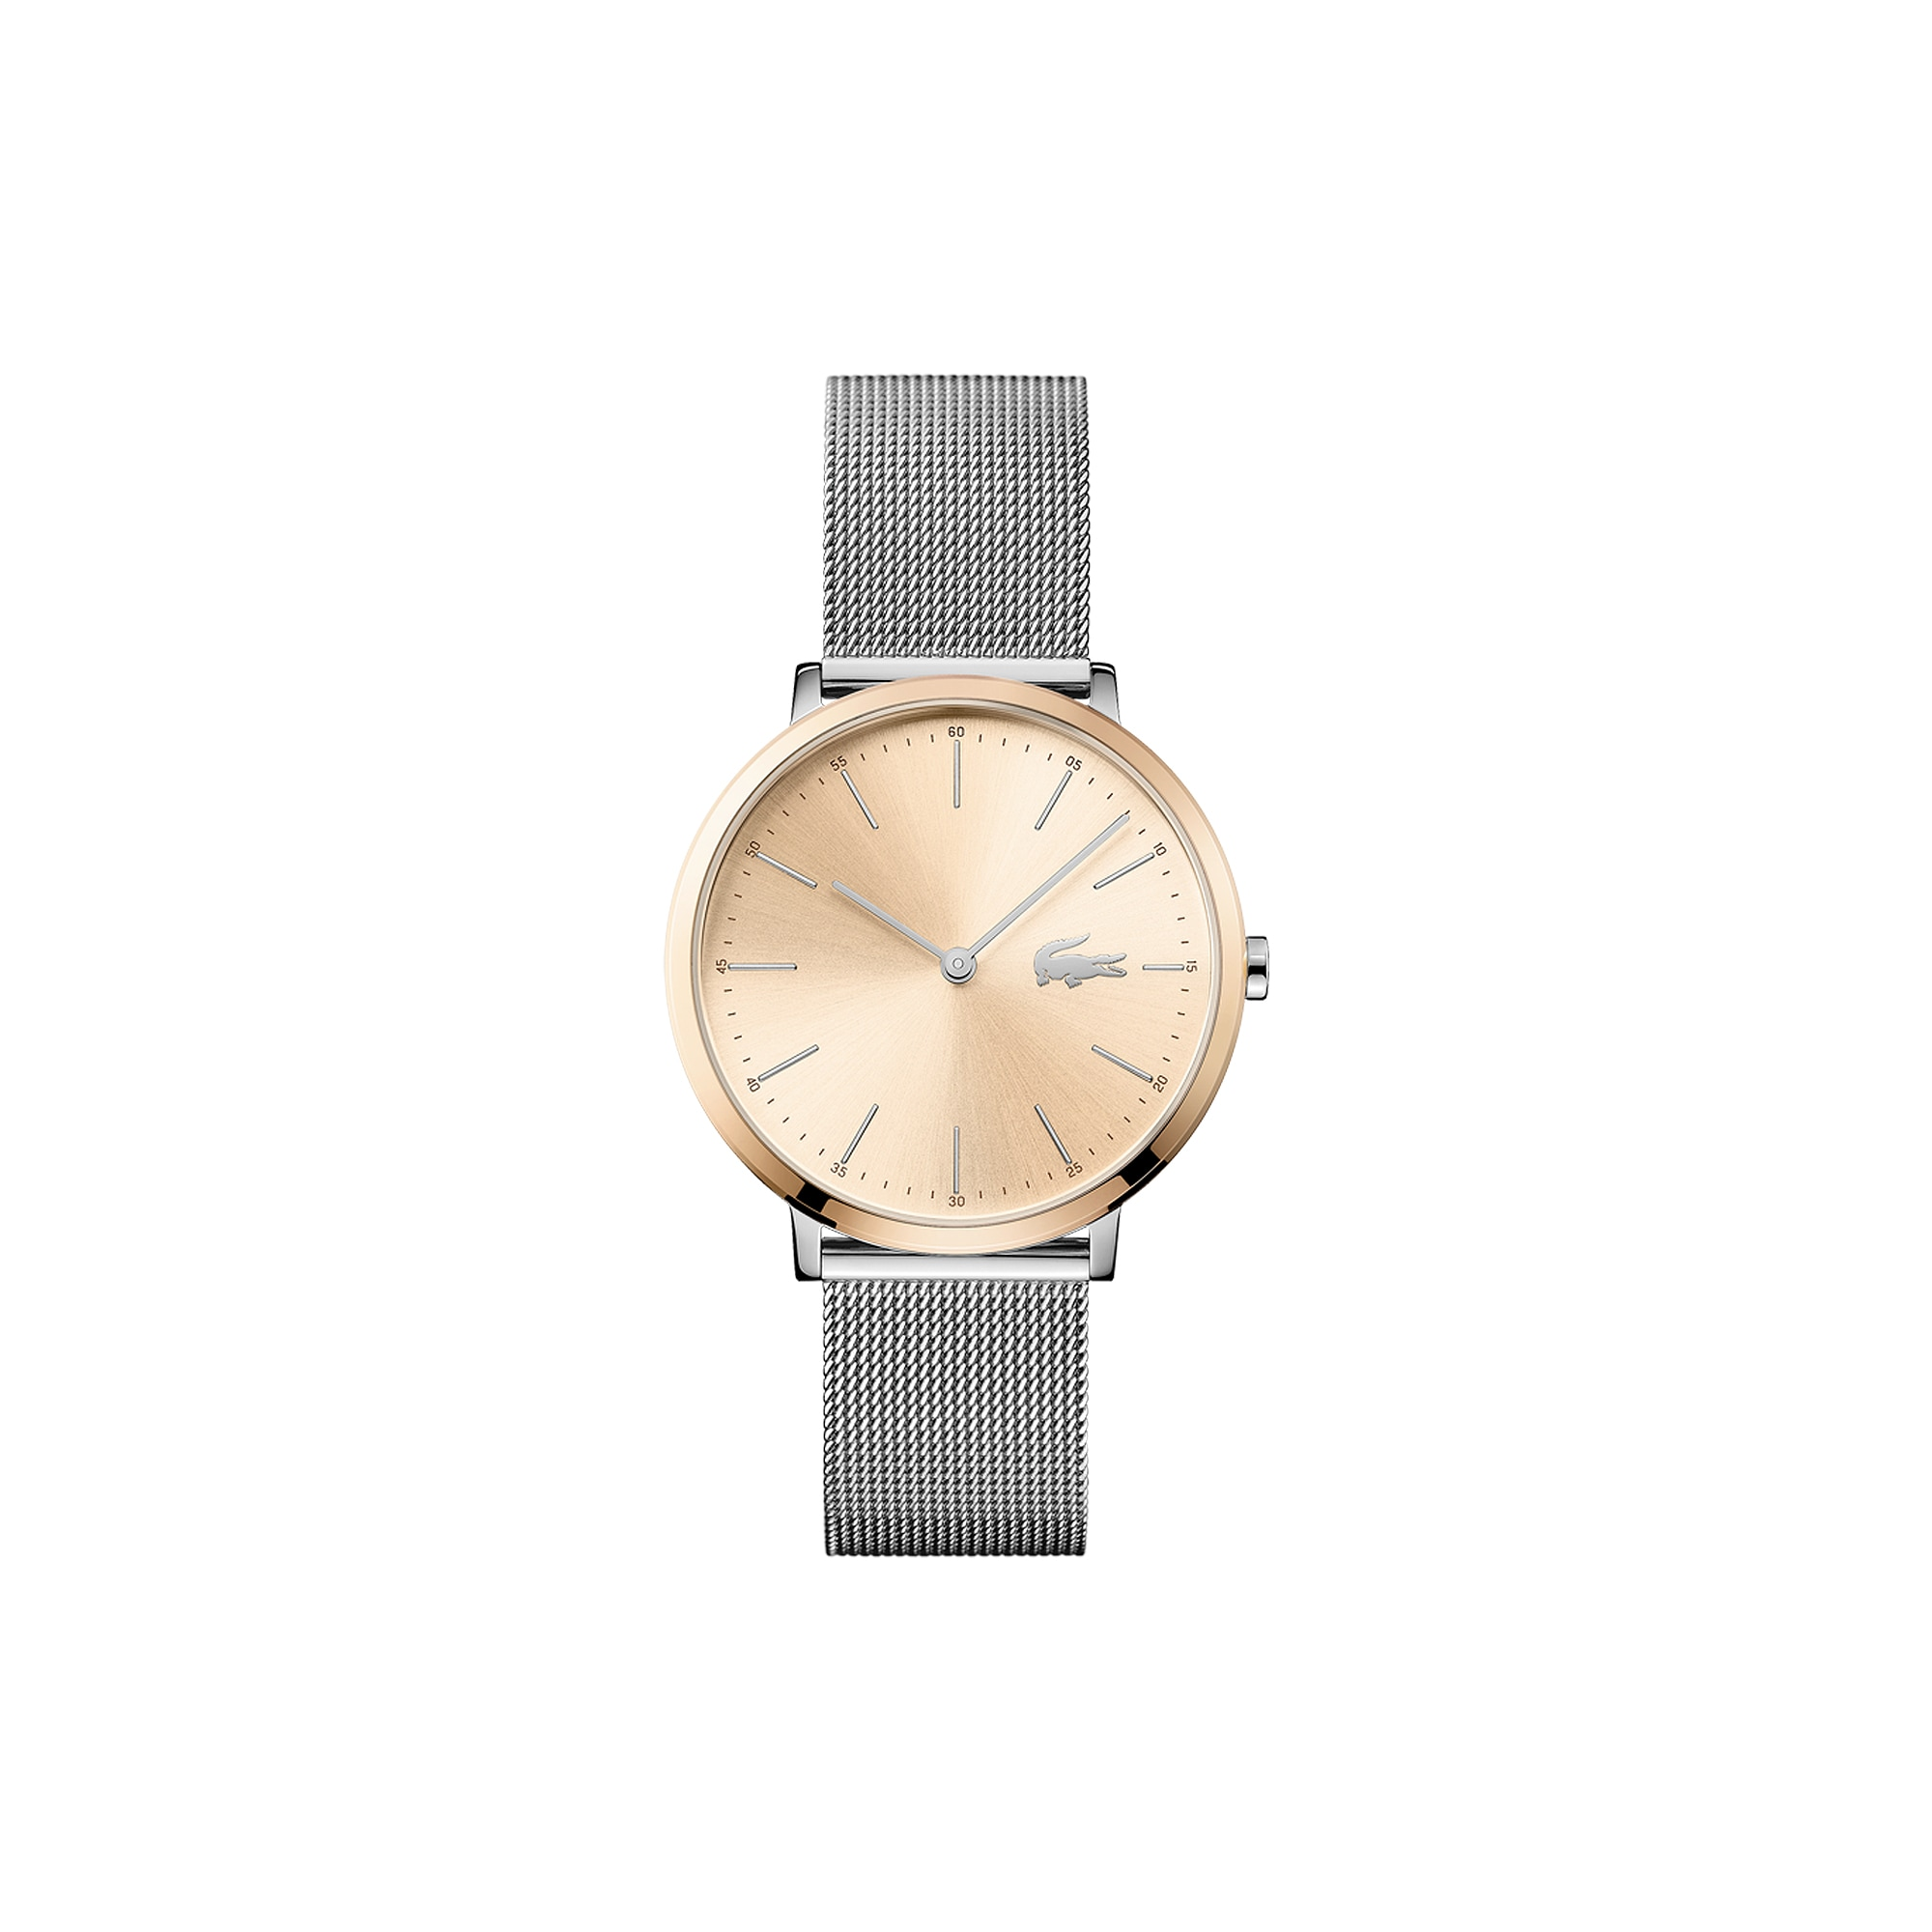 Women's Moon Ultra Slim Watch with Stainless Steel Mesh Bracelet